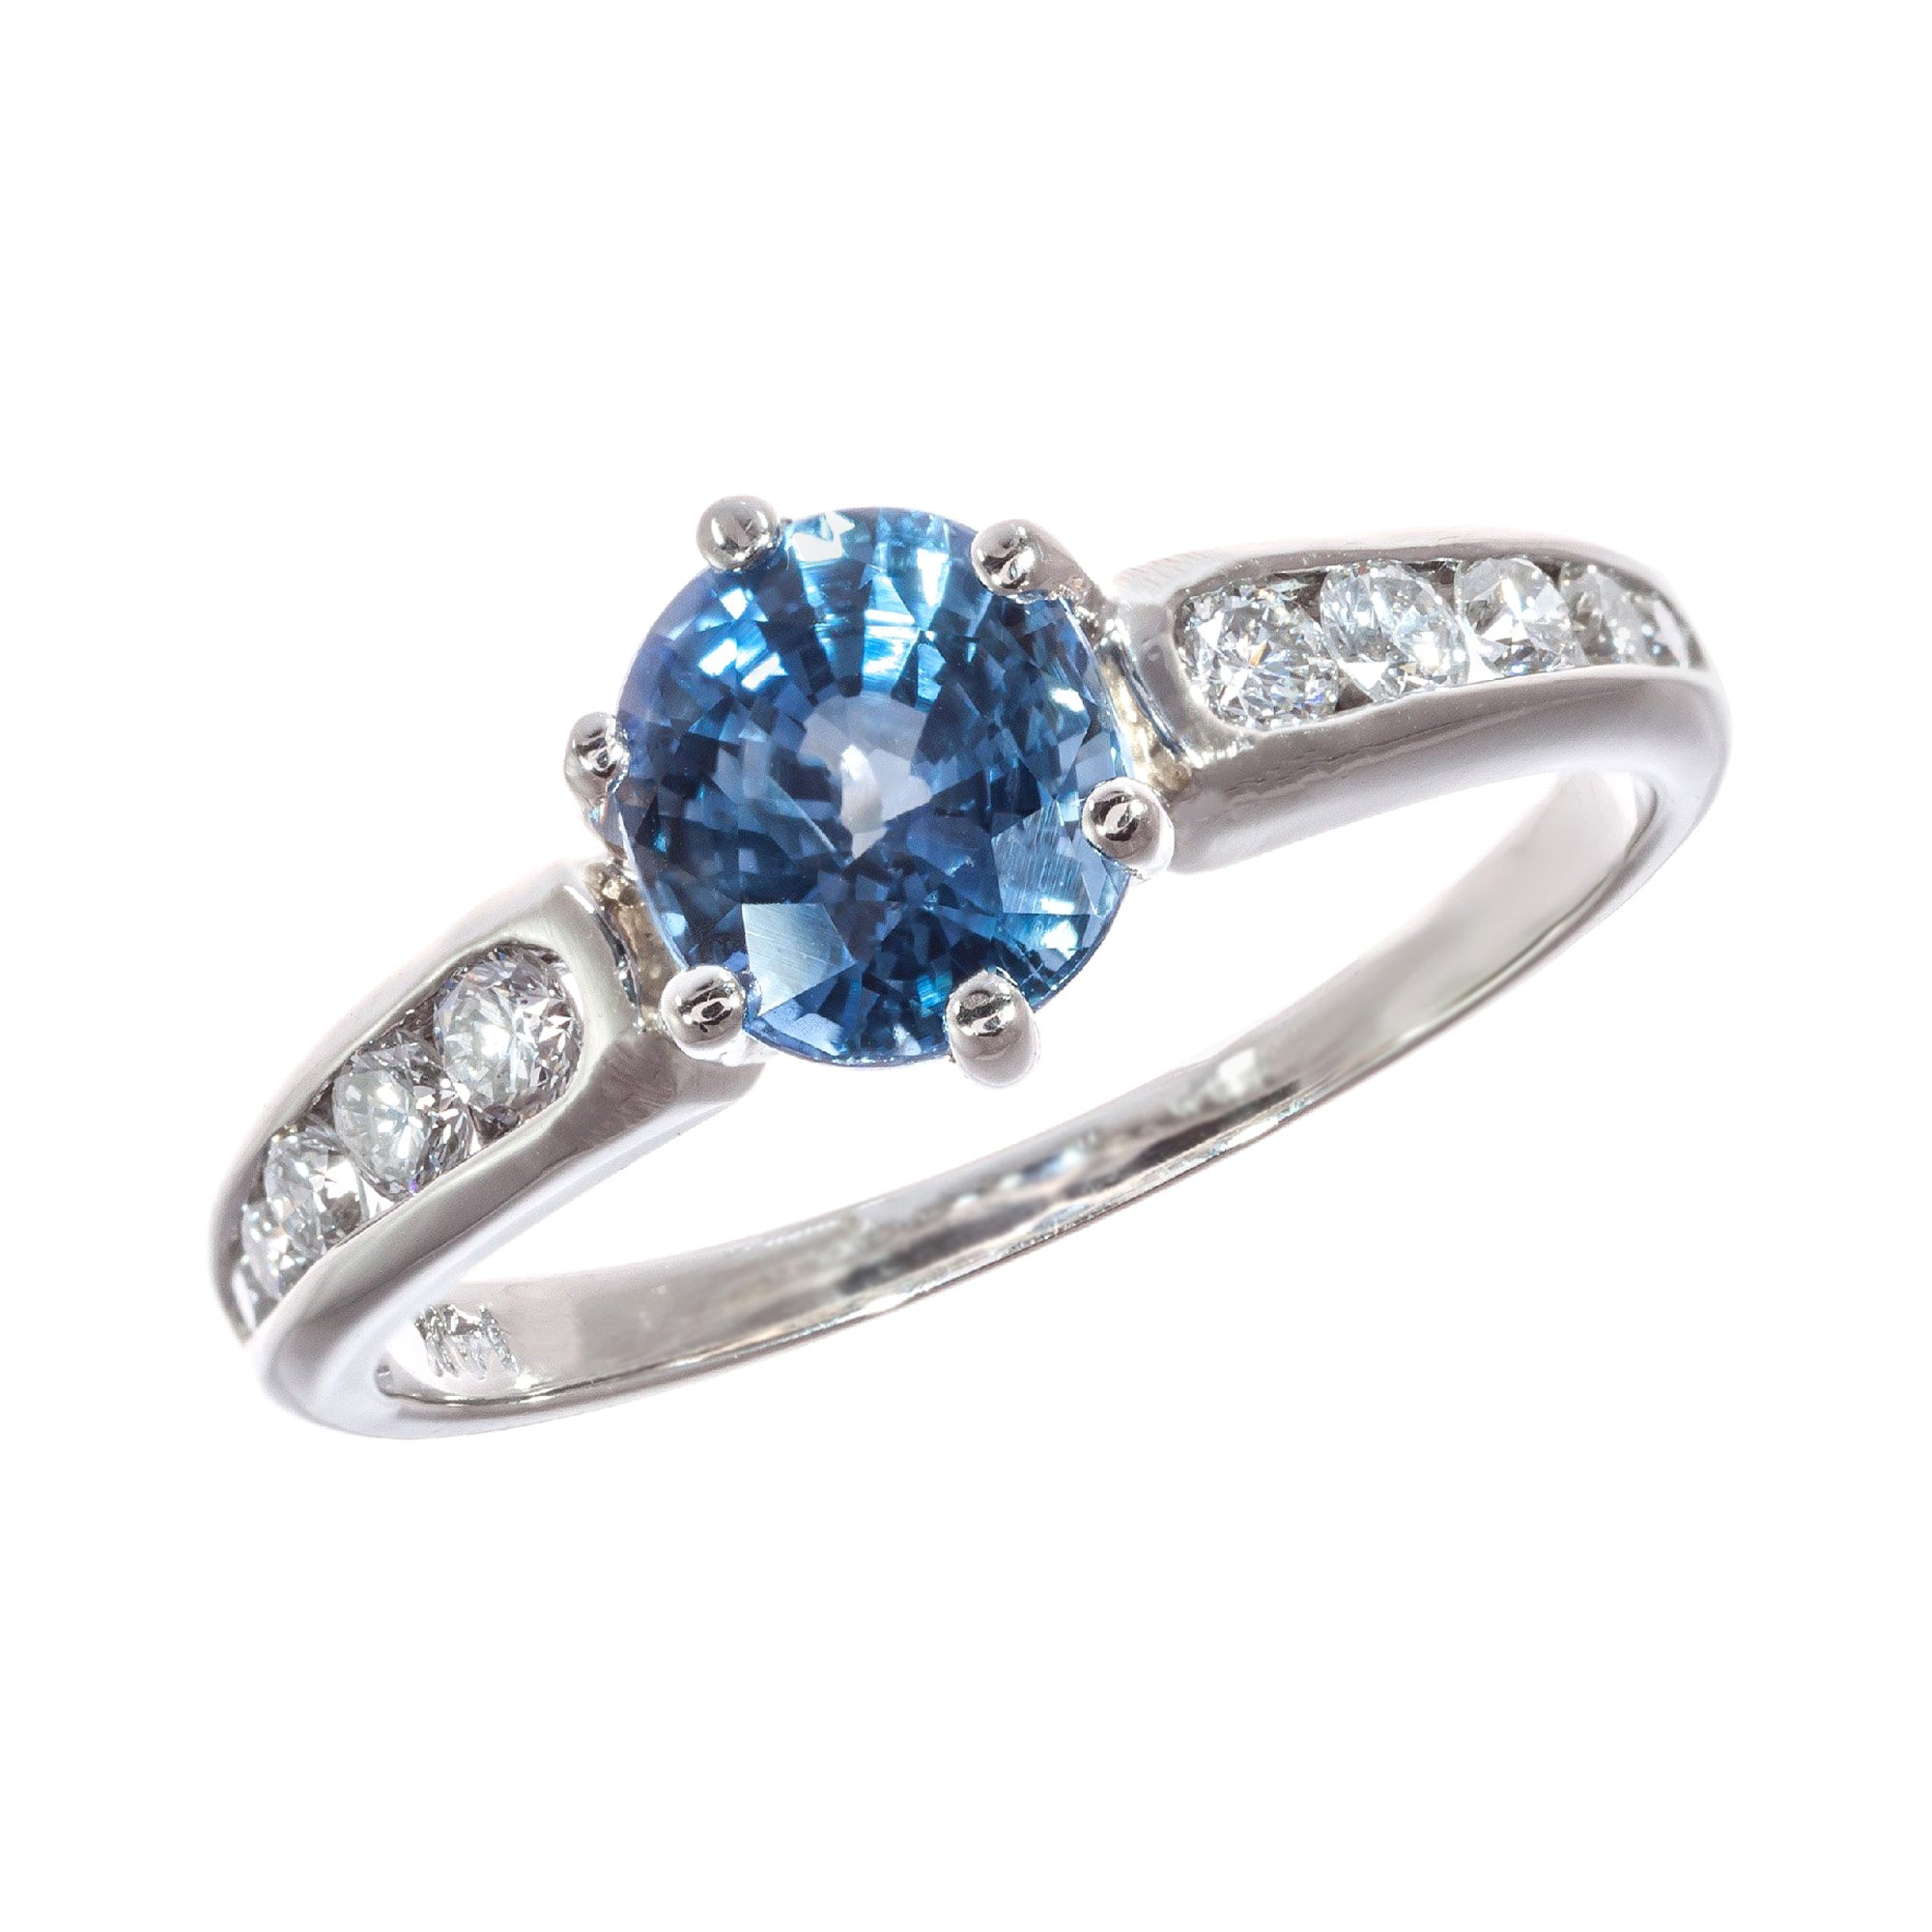 1.54 Carat Sapphire Diamond White Gold Solitaire Engagement Ring